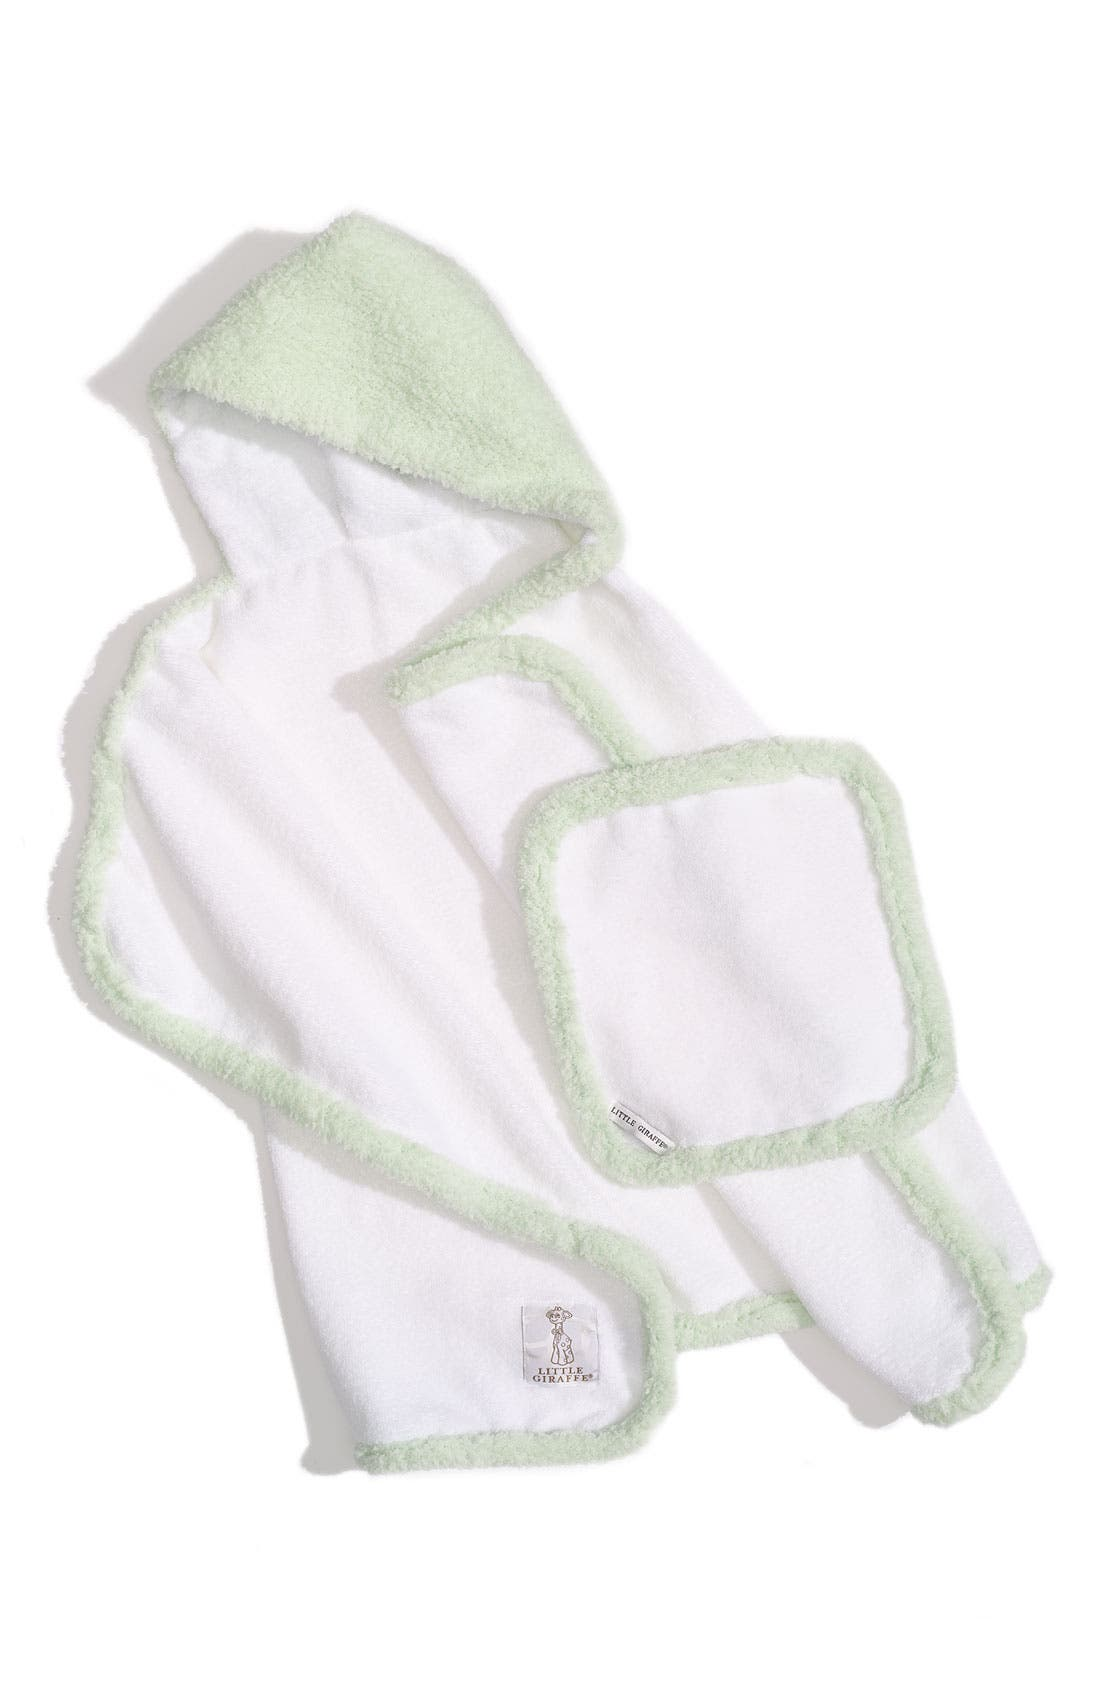 Alternate Image 1 Selected - Little Giraffe Towel & Washcloth Set (Infant & Toddler)